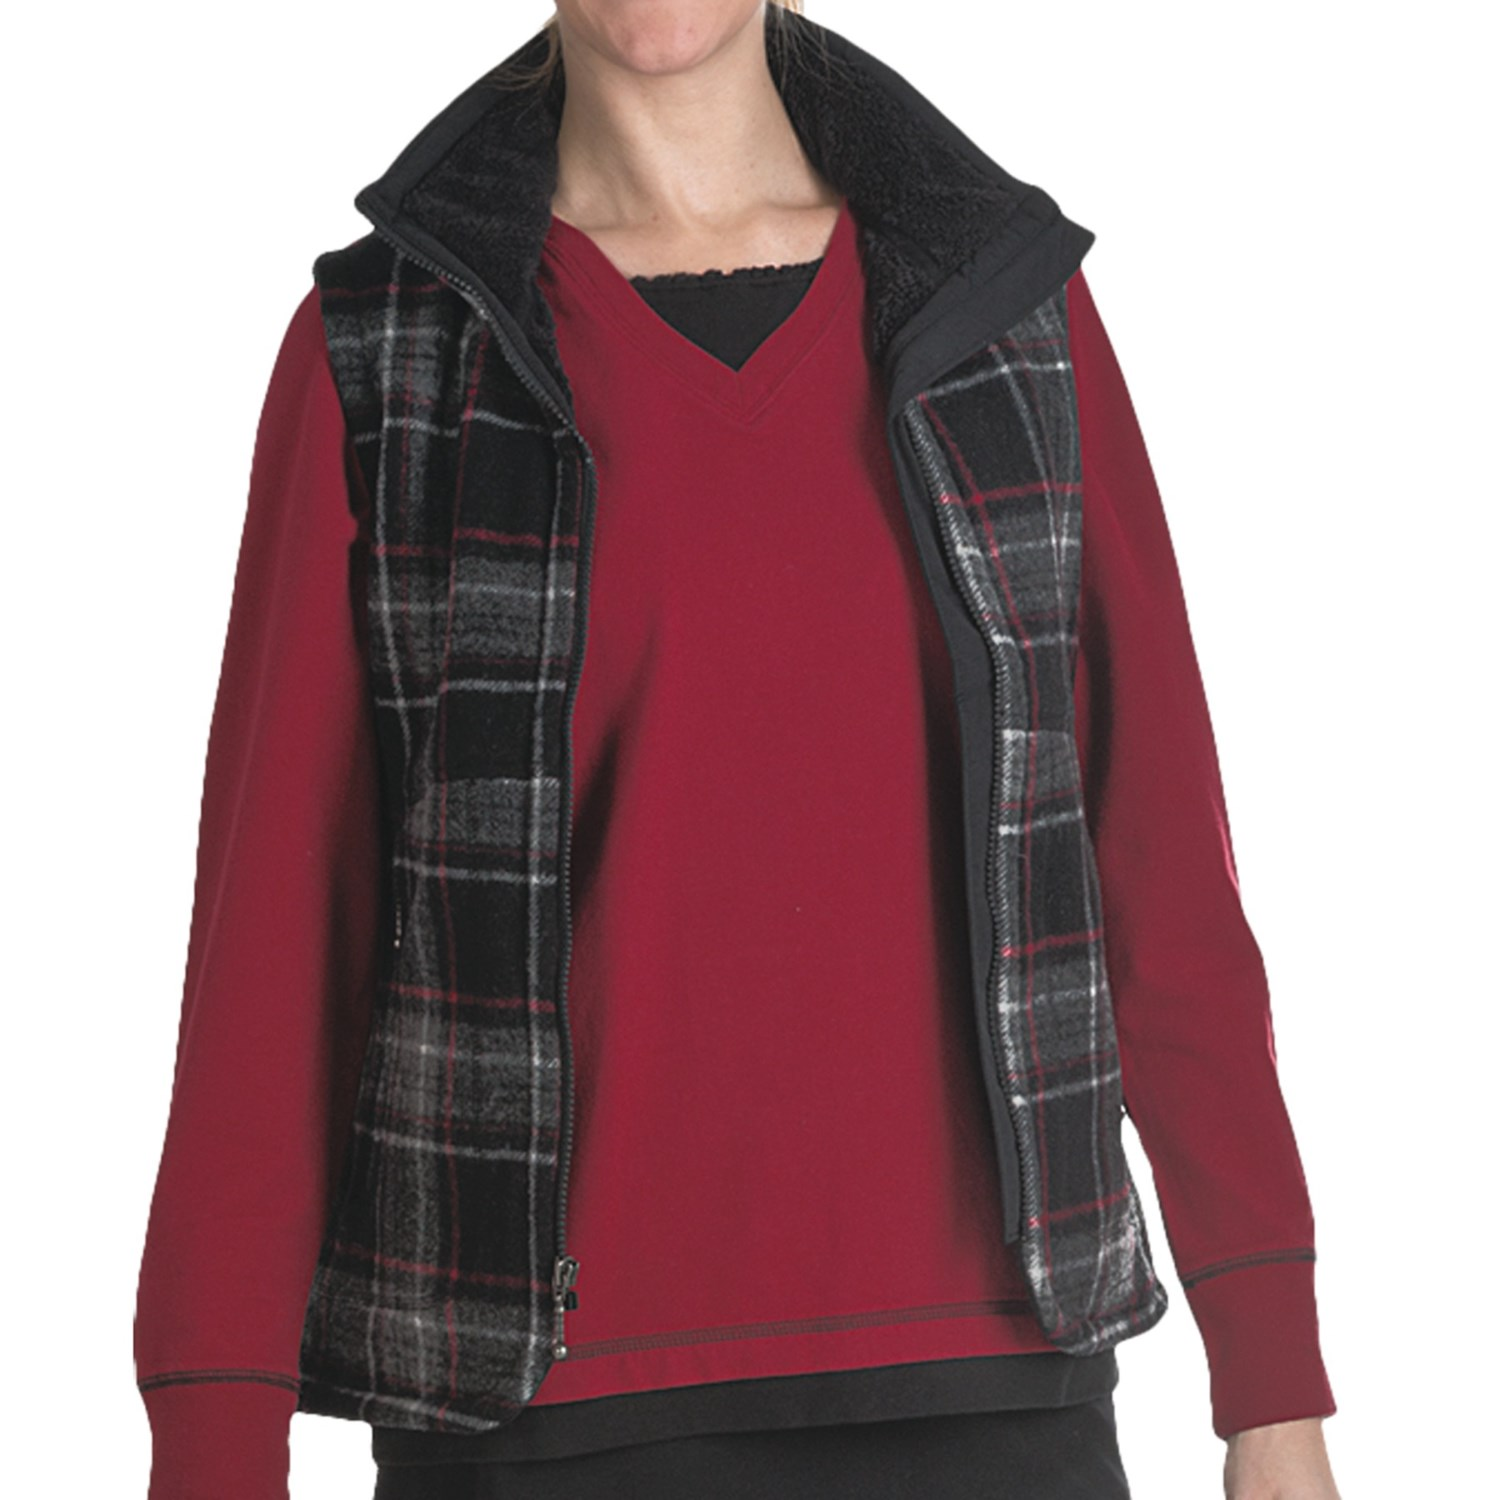 woolrich pine creek plaid vest for women 5412f. Black Bedroom Furniture Sets. Home Design Ideas